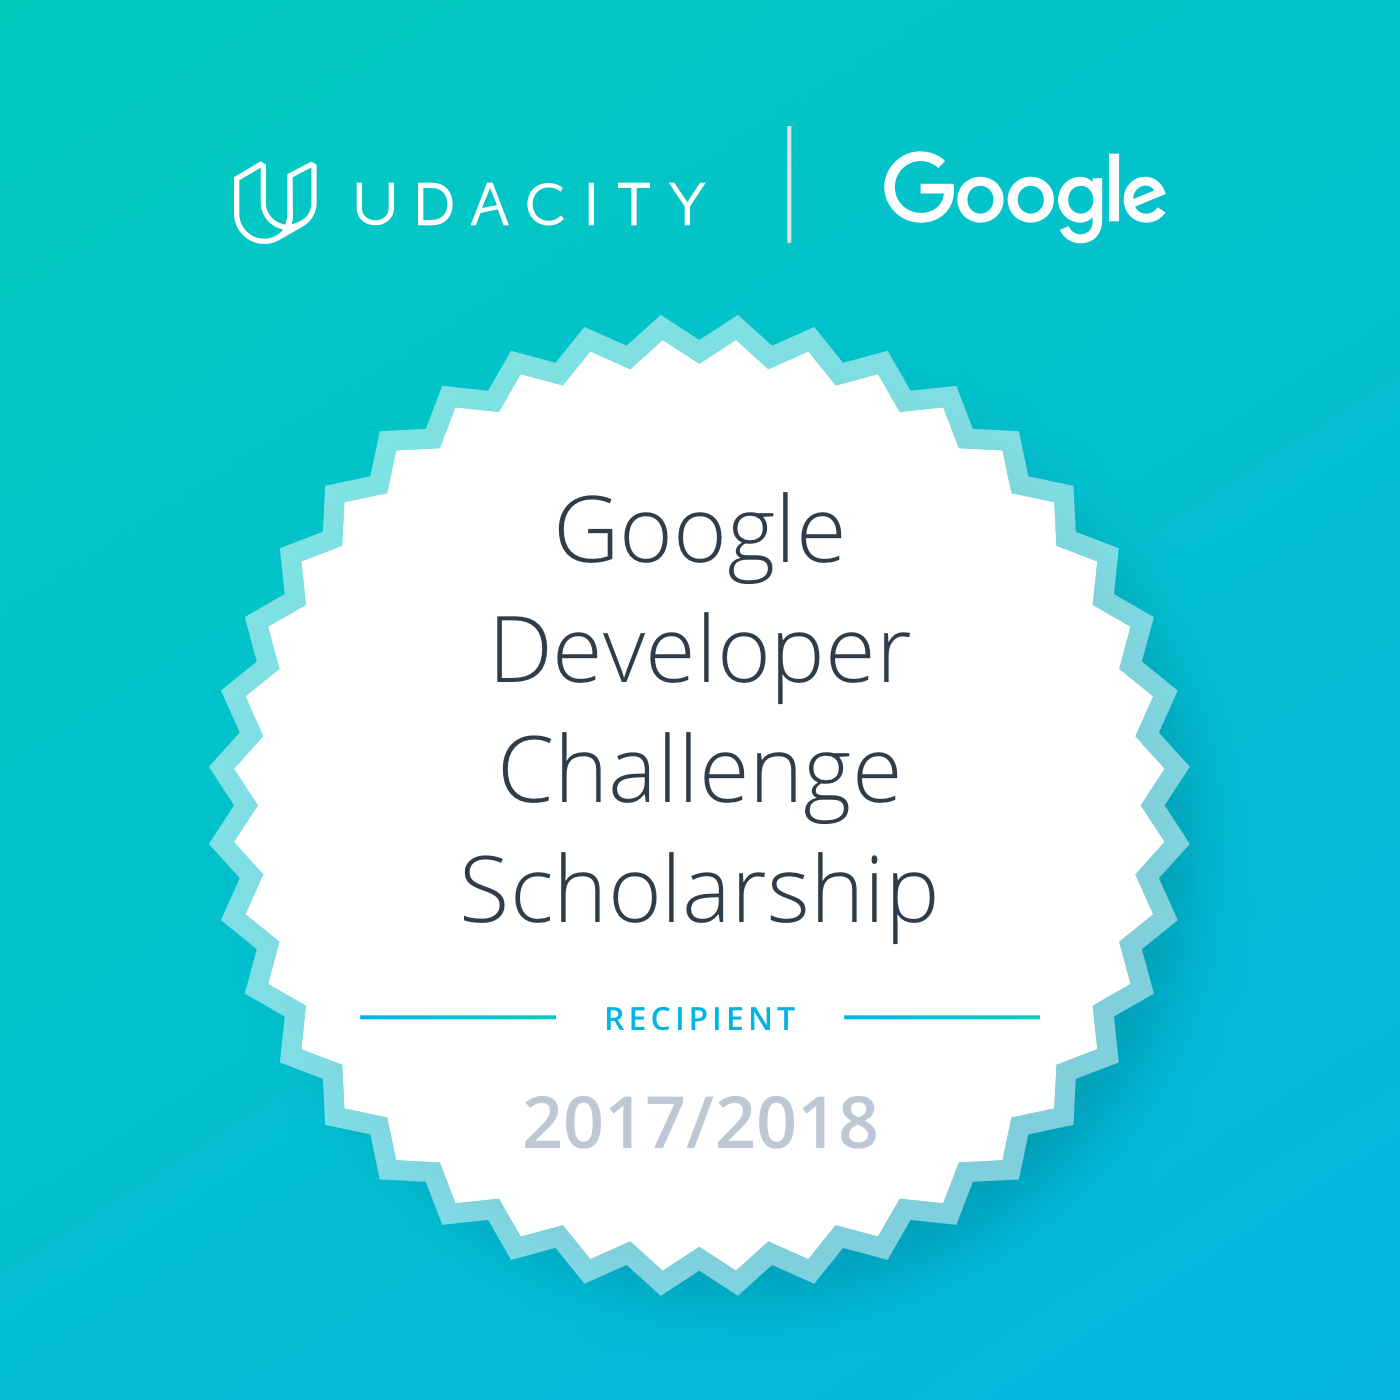 https://s3-us-west-2.amazonaws.com/udacity-email/Scholarships/Google-Dev-EMEA-Badge.png?utm_medium=email